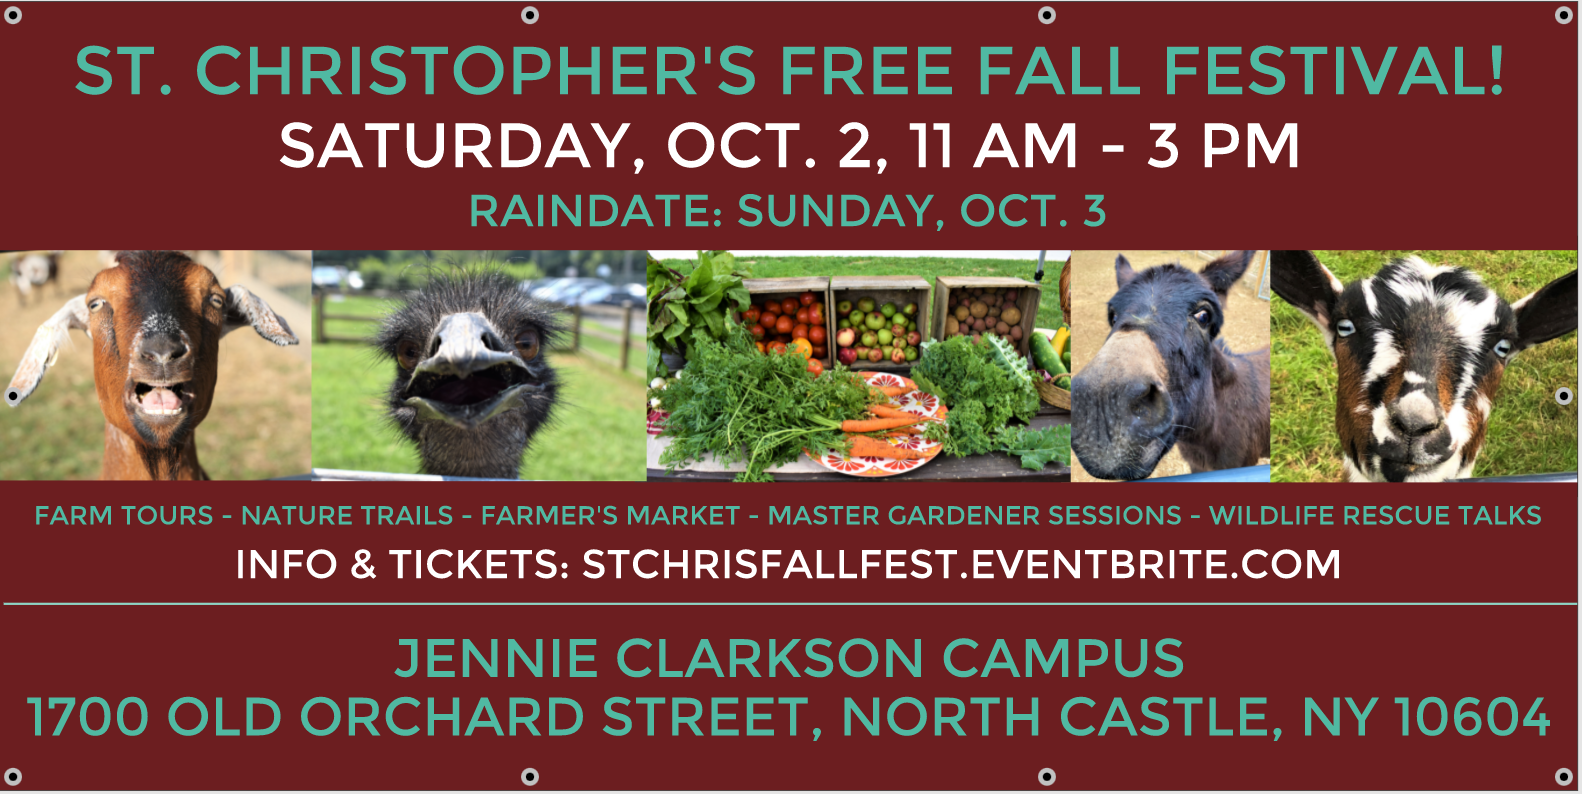 St. Christopher's FREE Fall Festival at St. Christopher's Jennie Clarkson Campus